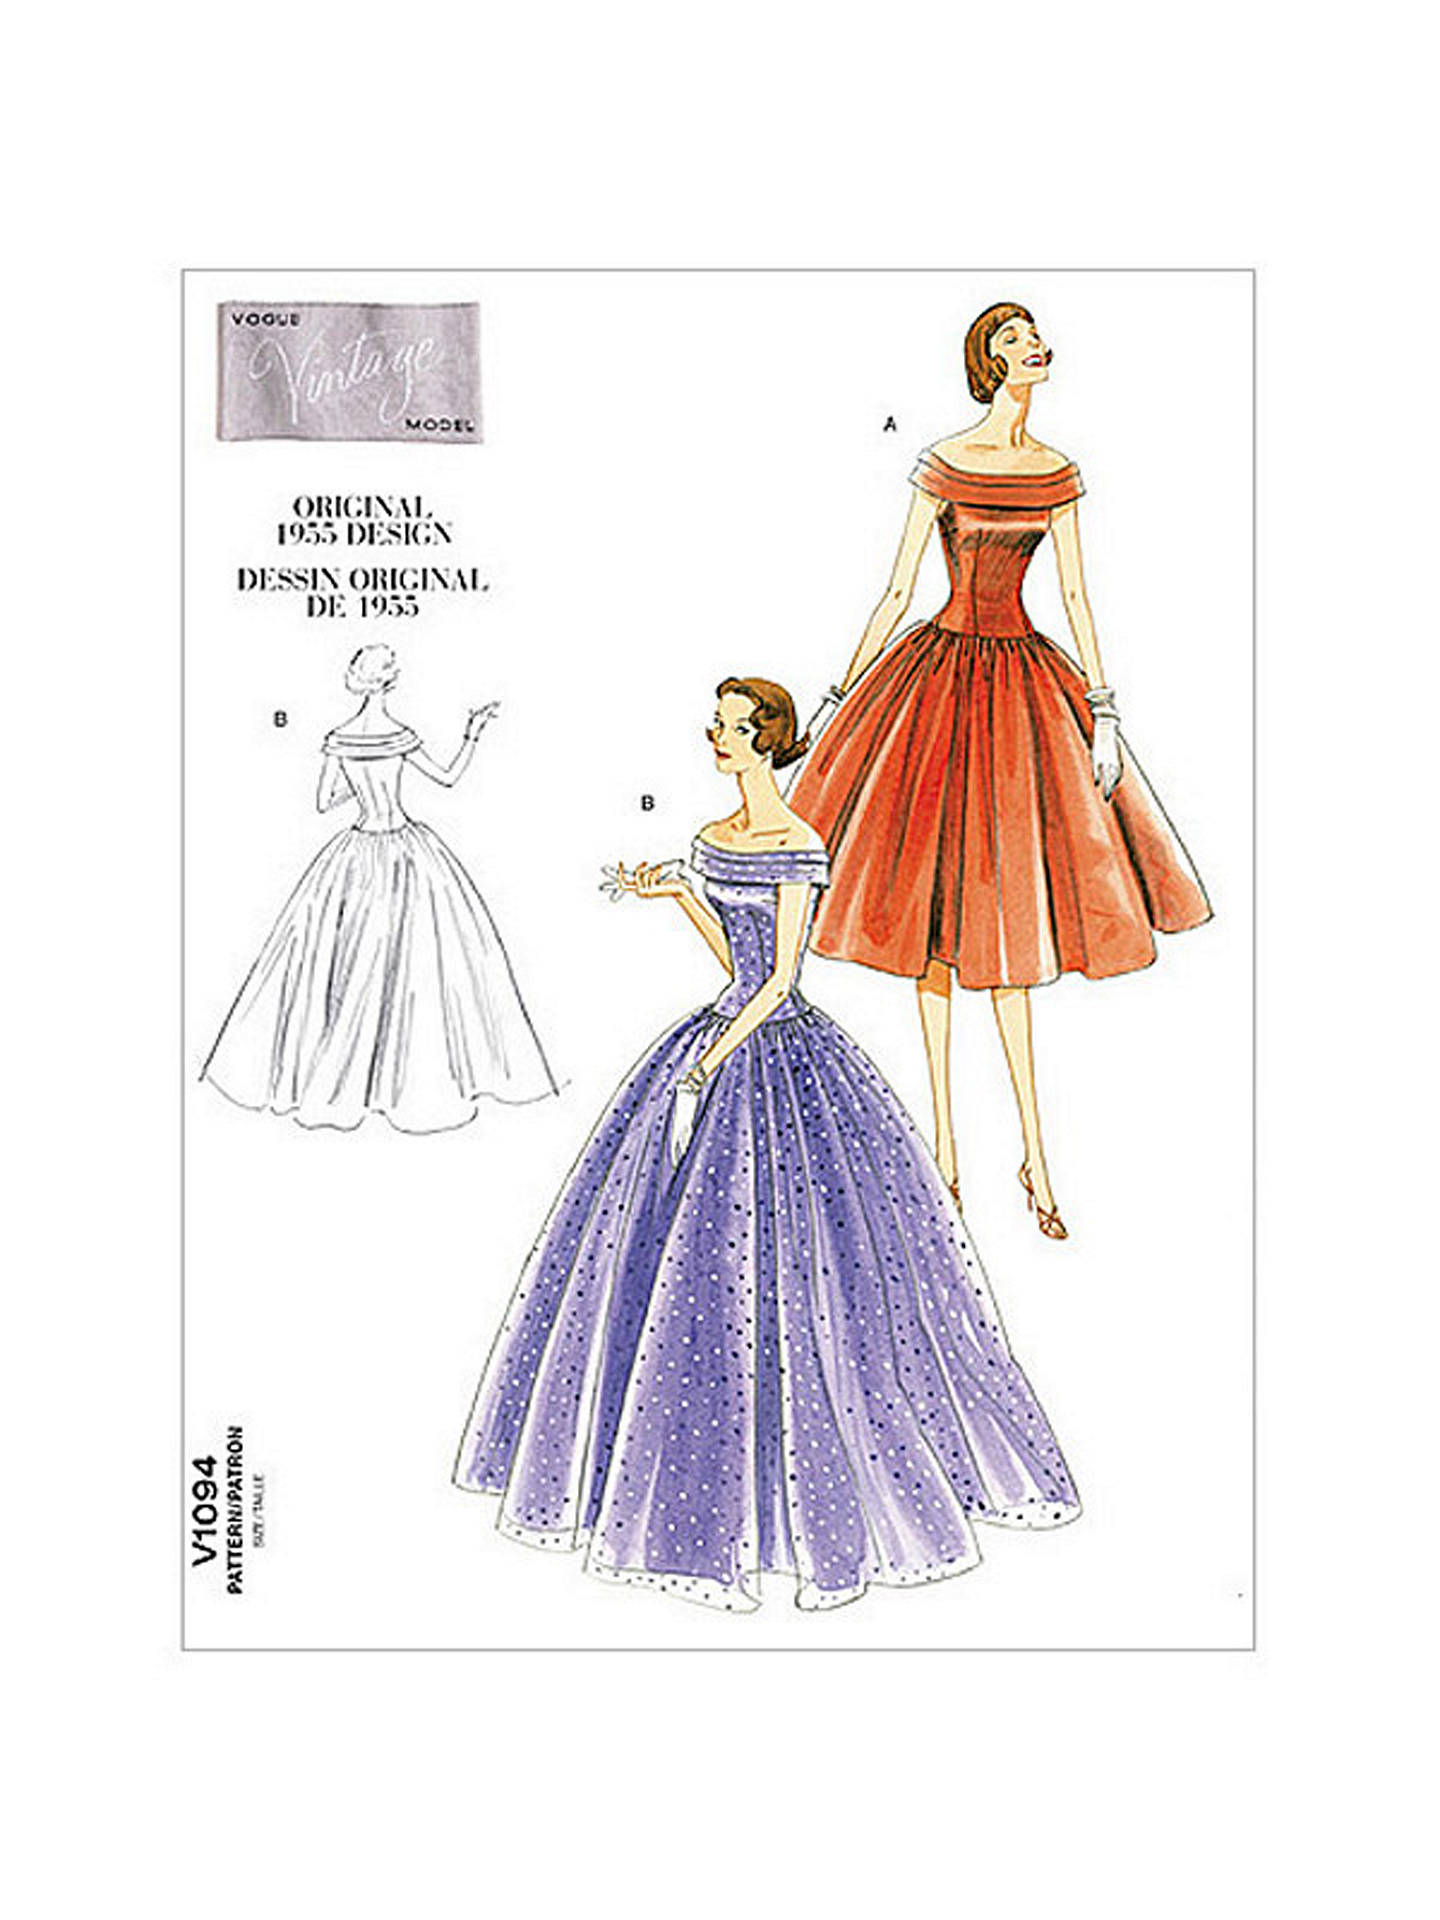 Vogue Vintage Evening Gown Sewing Pattern, 1094 at John Lewis & Partners